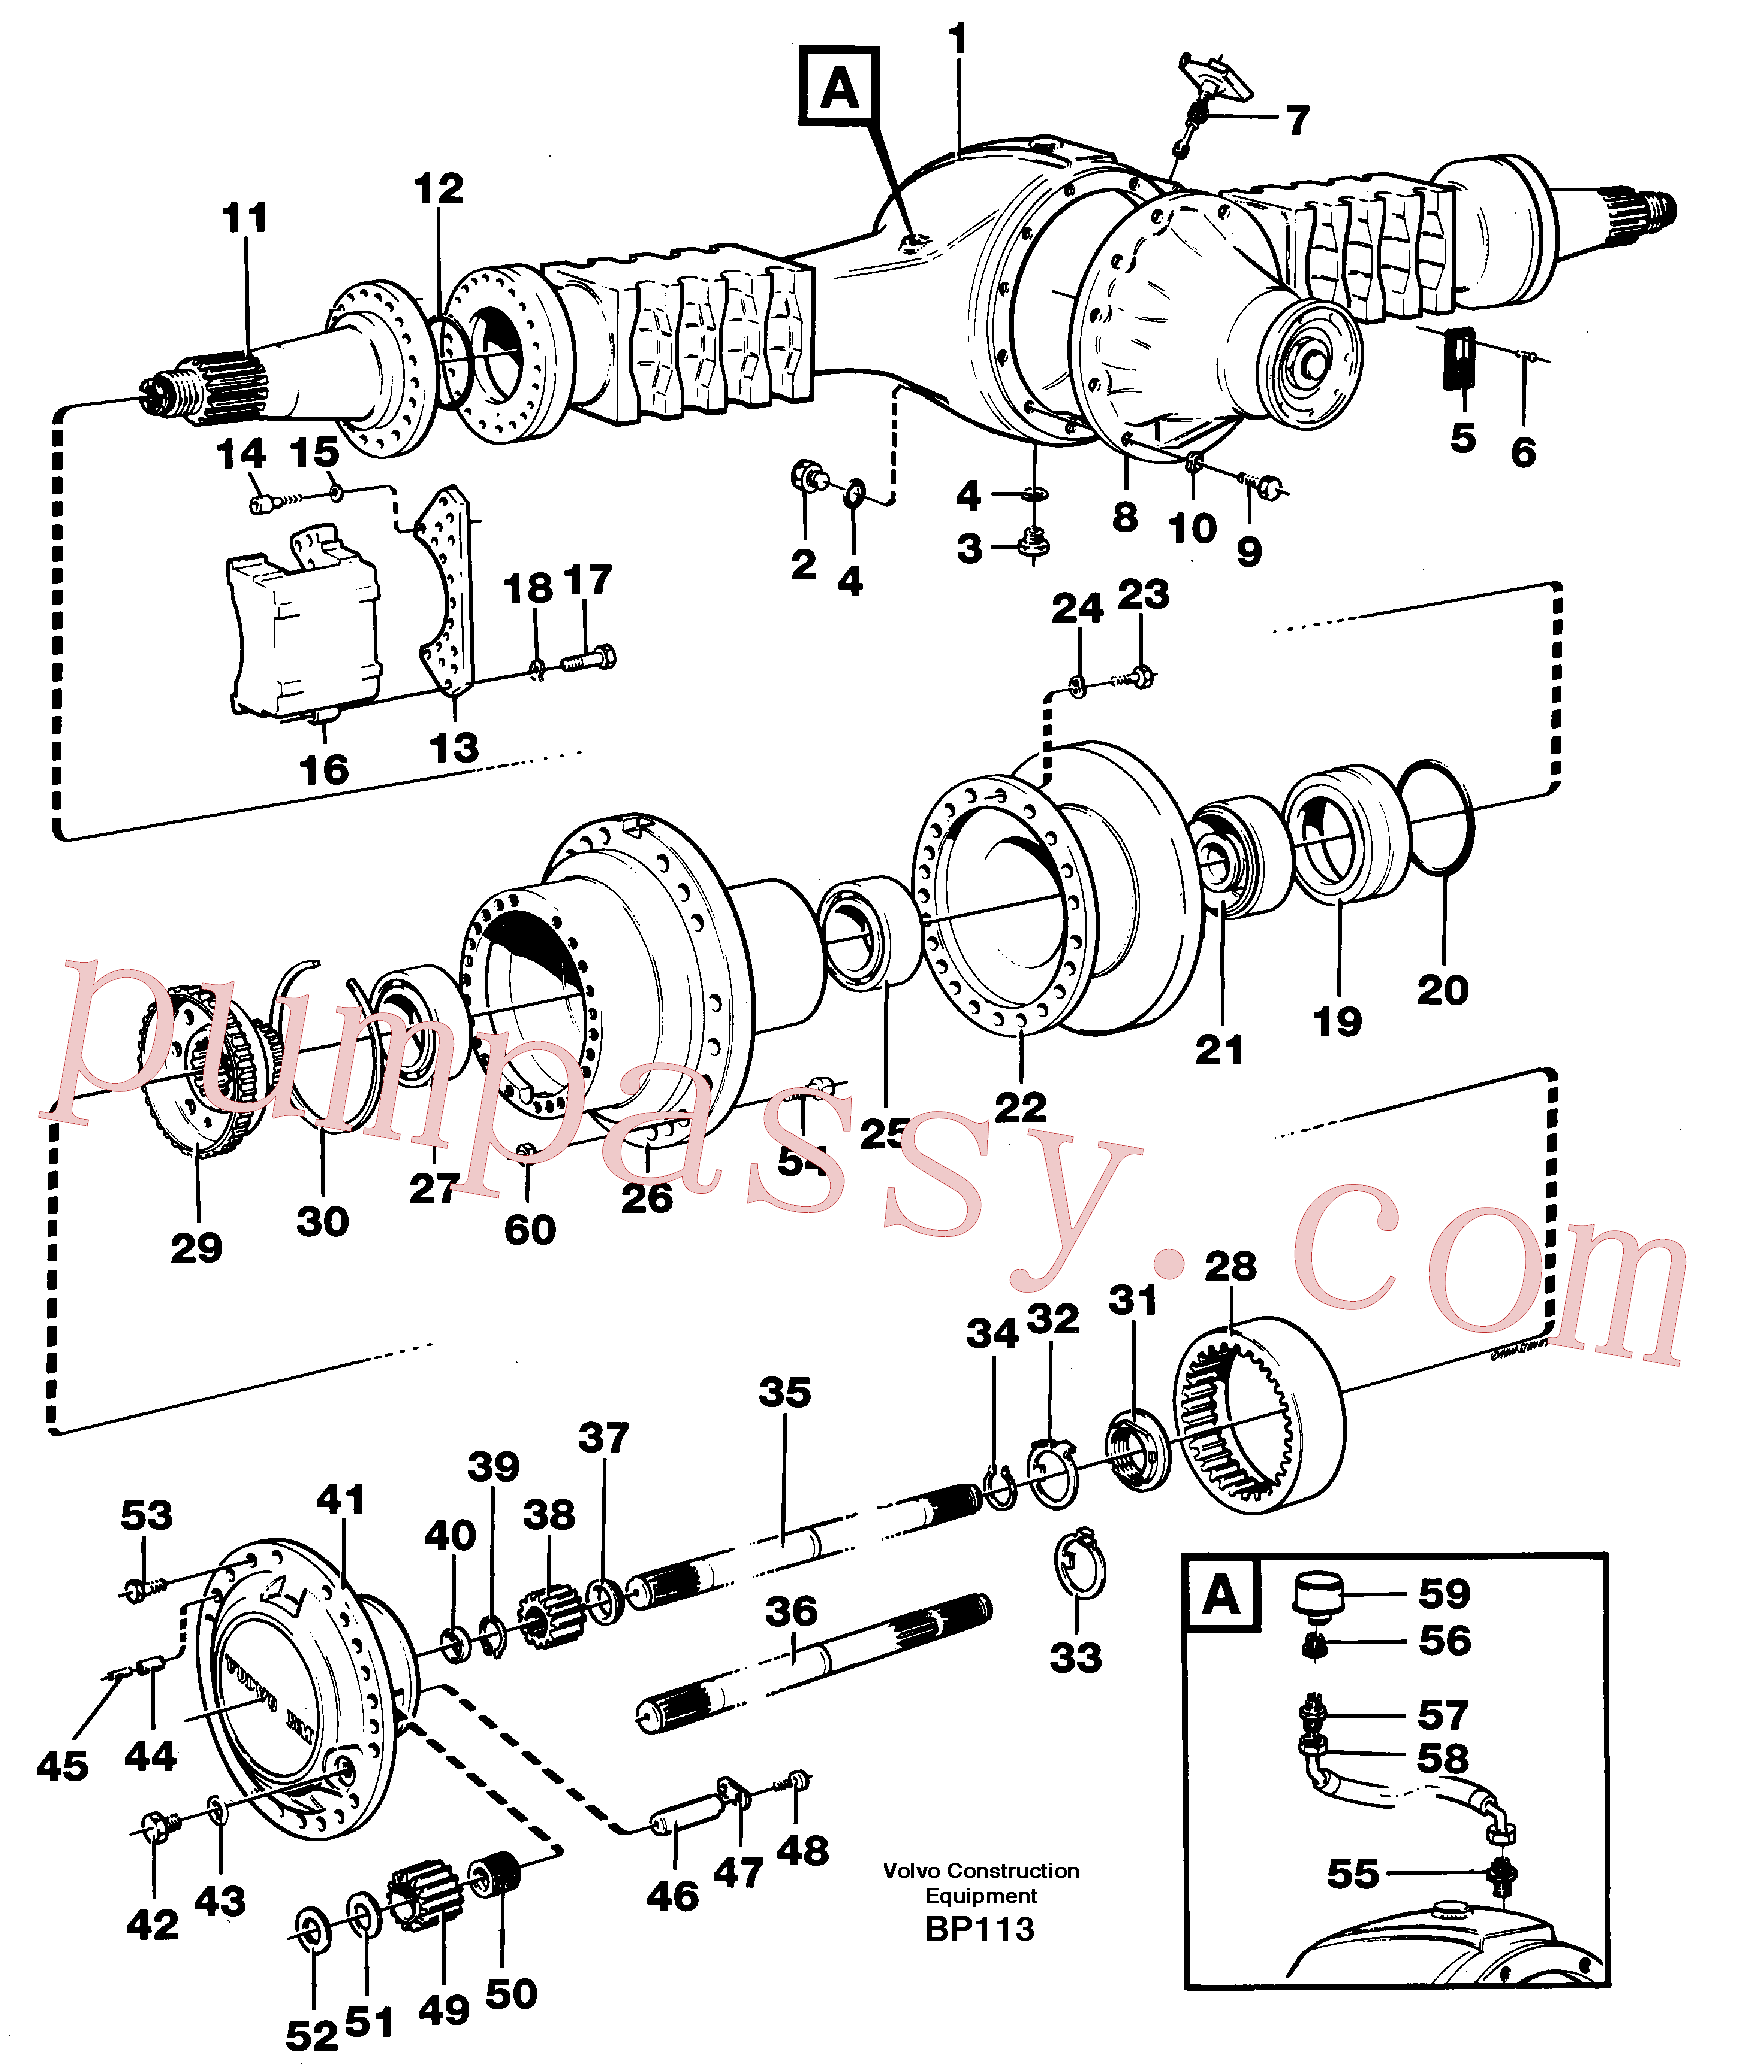 VOE951990 for Volvo Planet shaft(BP113 assembly)